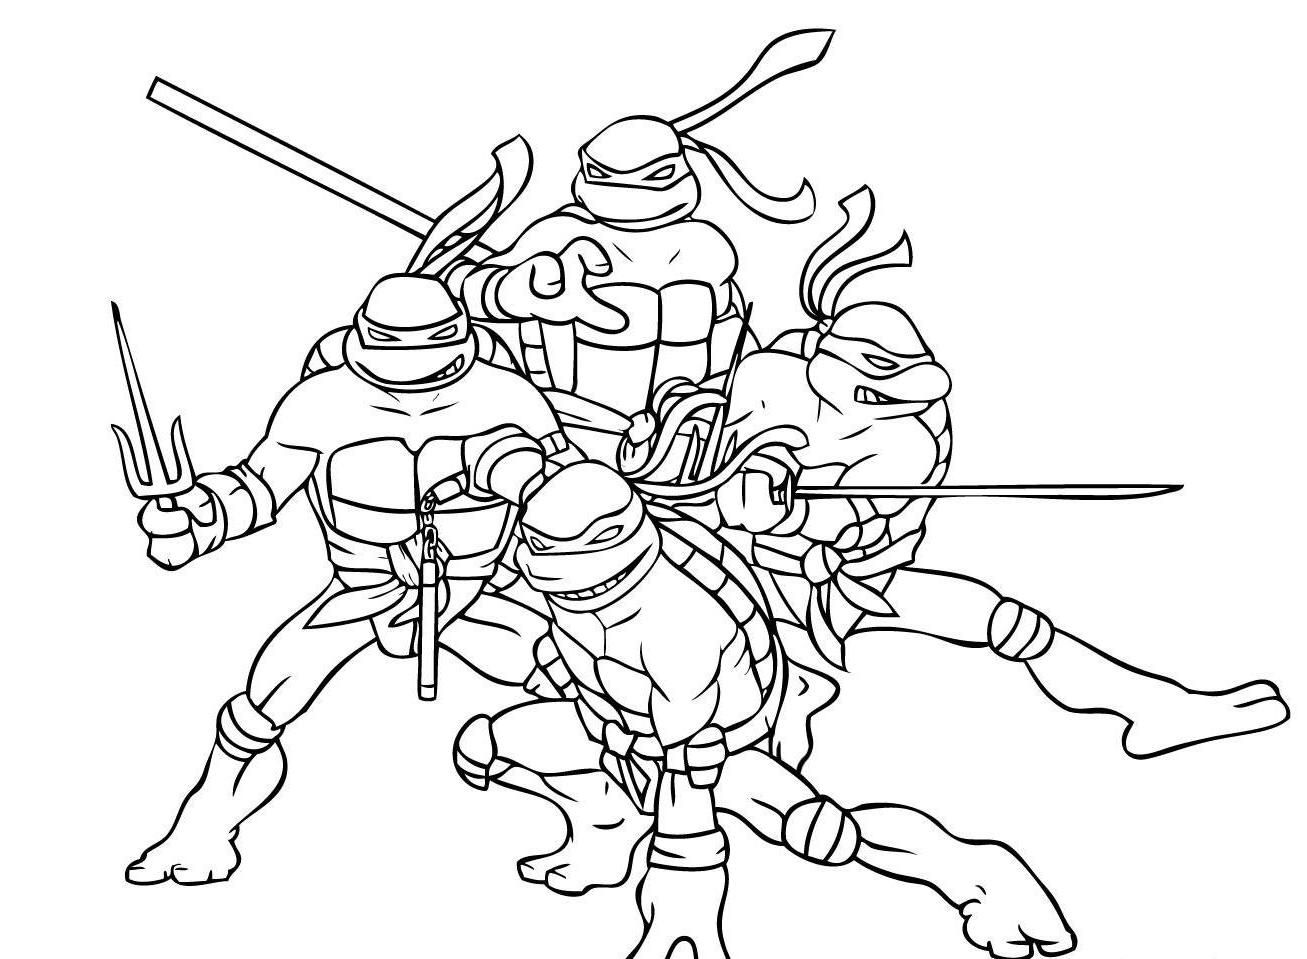 The ninja turtles coloring pages 80s cartoons colouring for Coloring pages turtles ninja